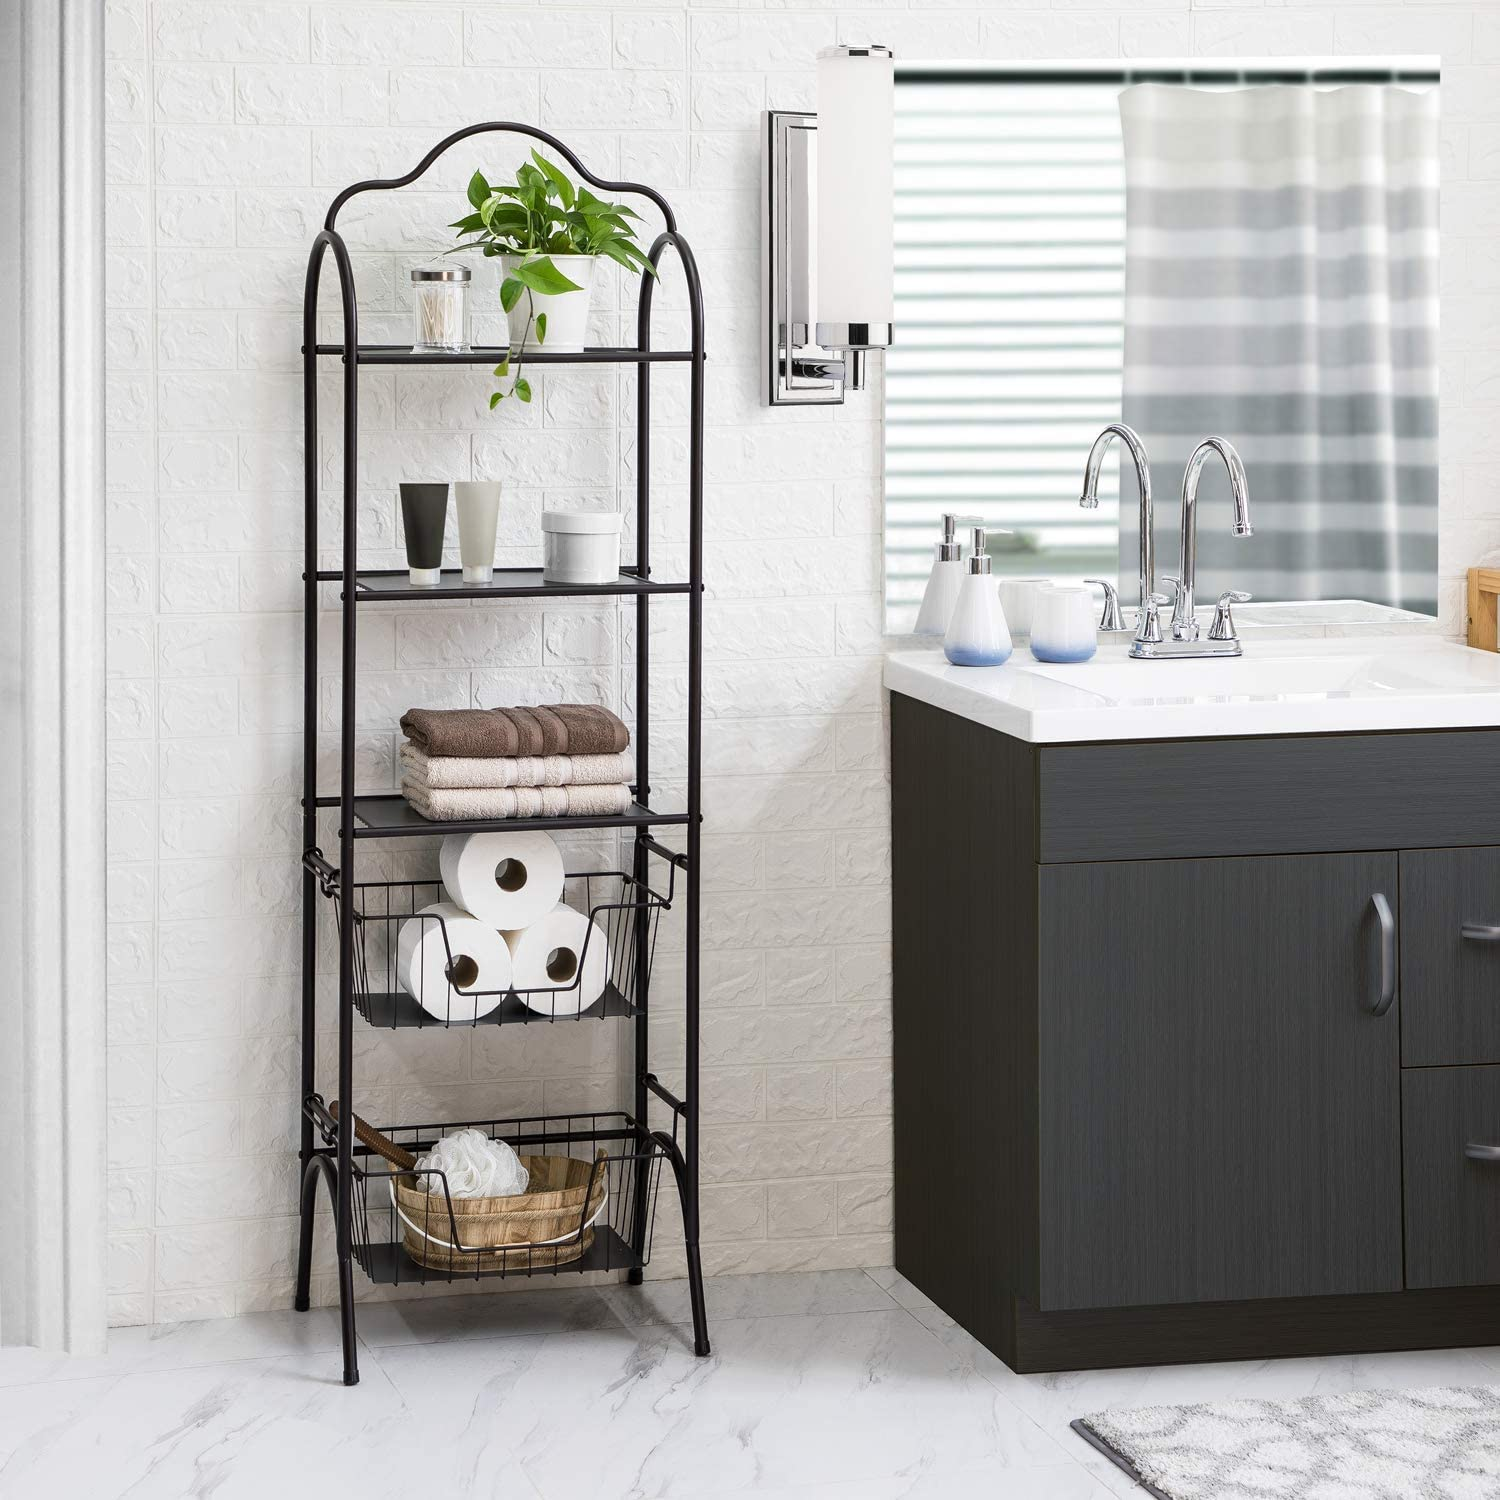 Home Zone Bath Storage Rack with Basket Shelving, 5-Tier